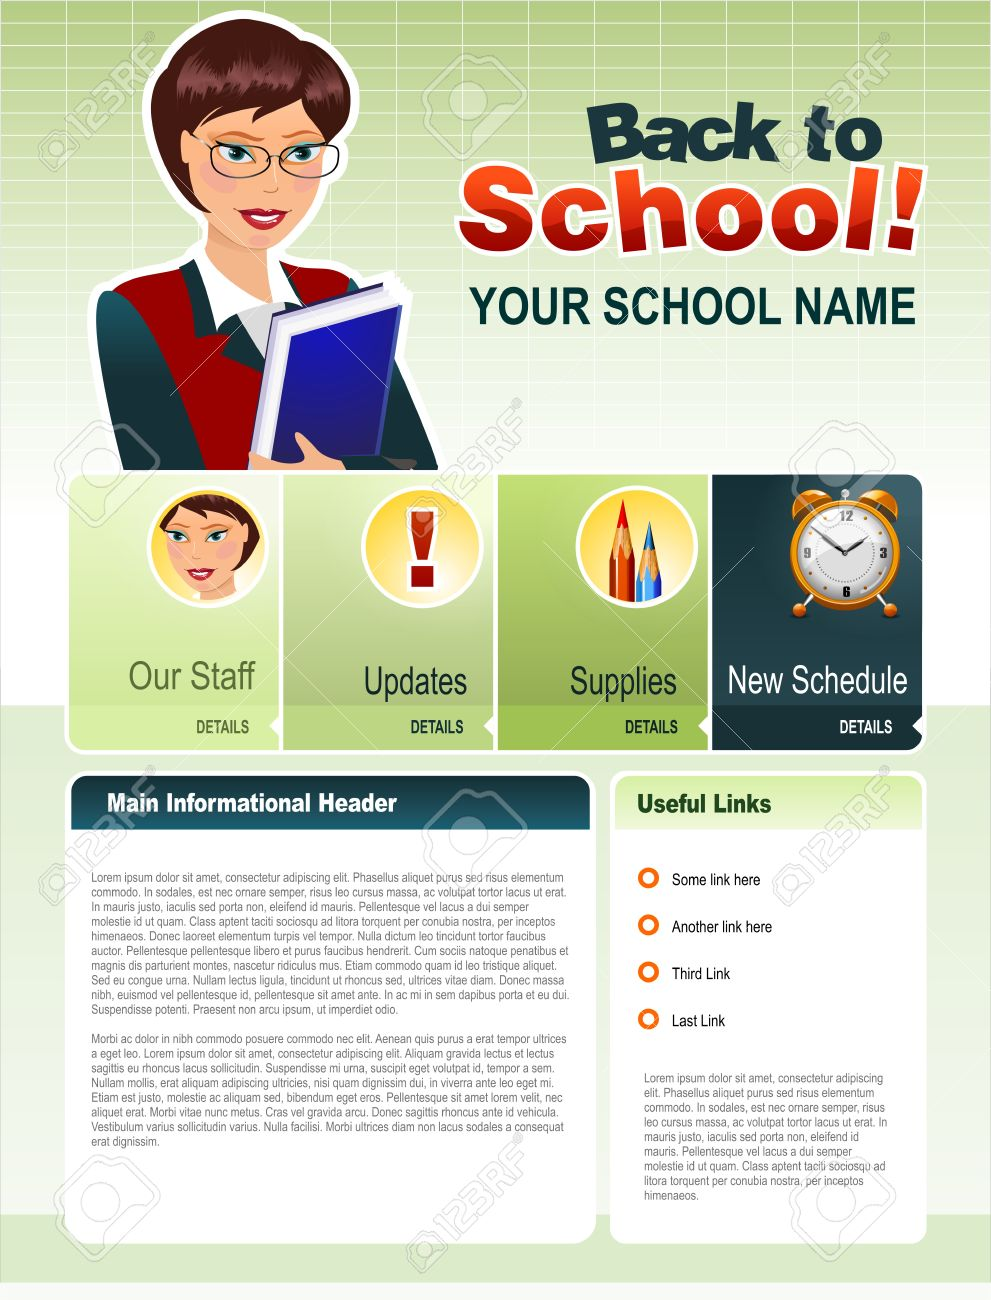 Back To School Royalty Free Cliparts, Vectors, And Stock ...